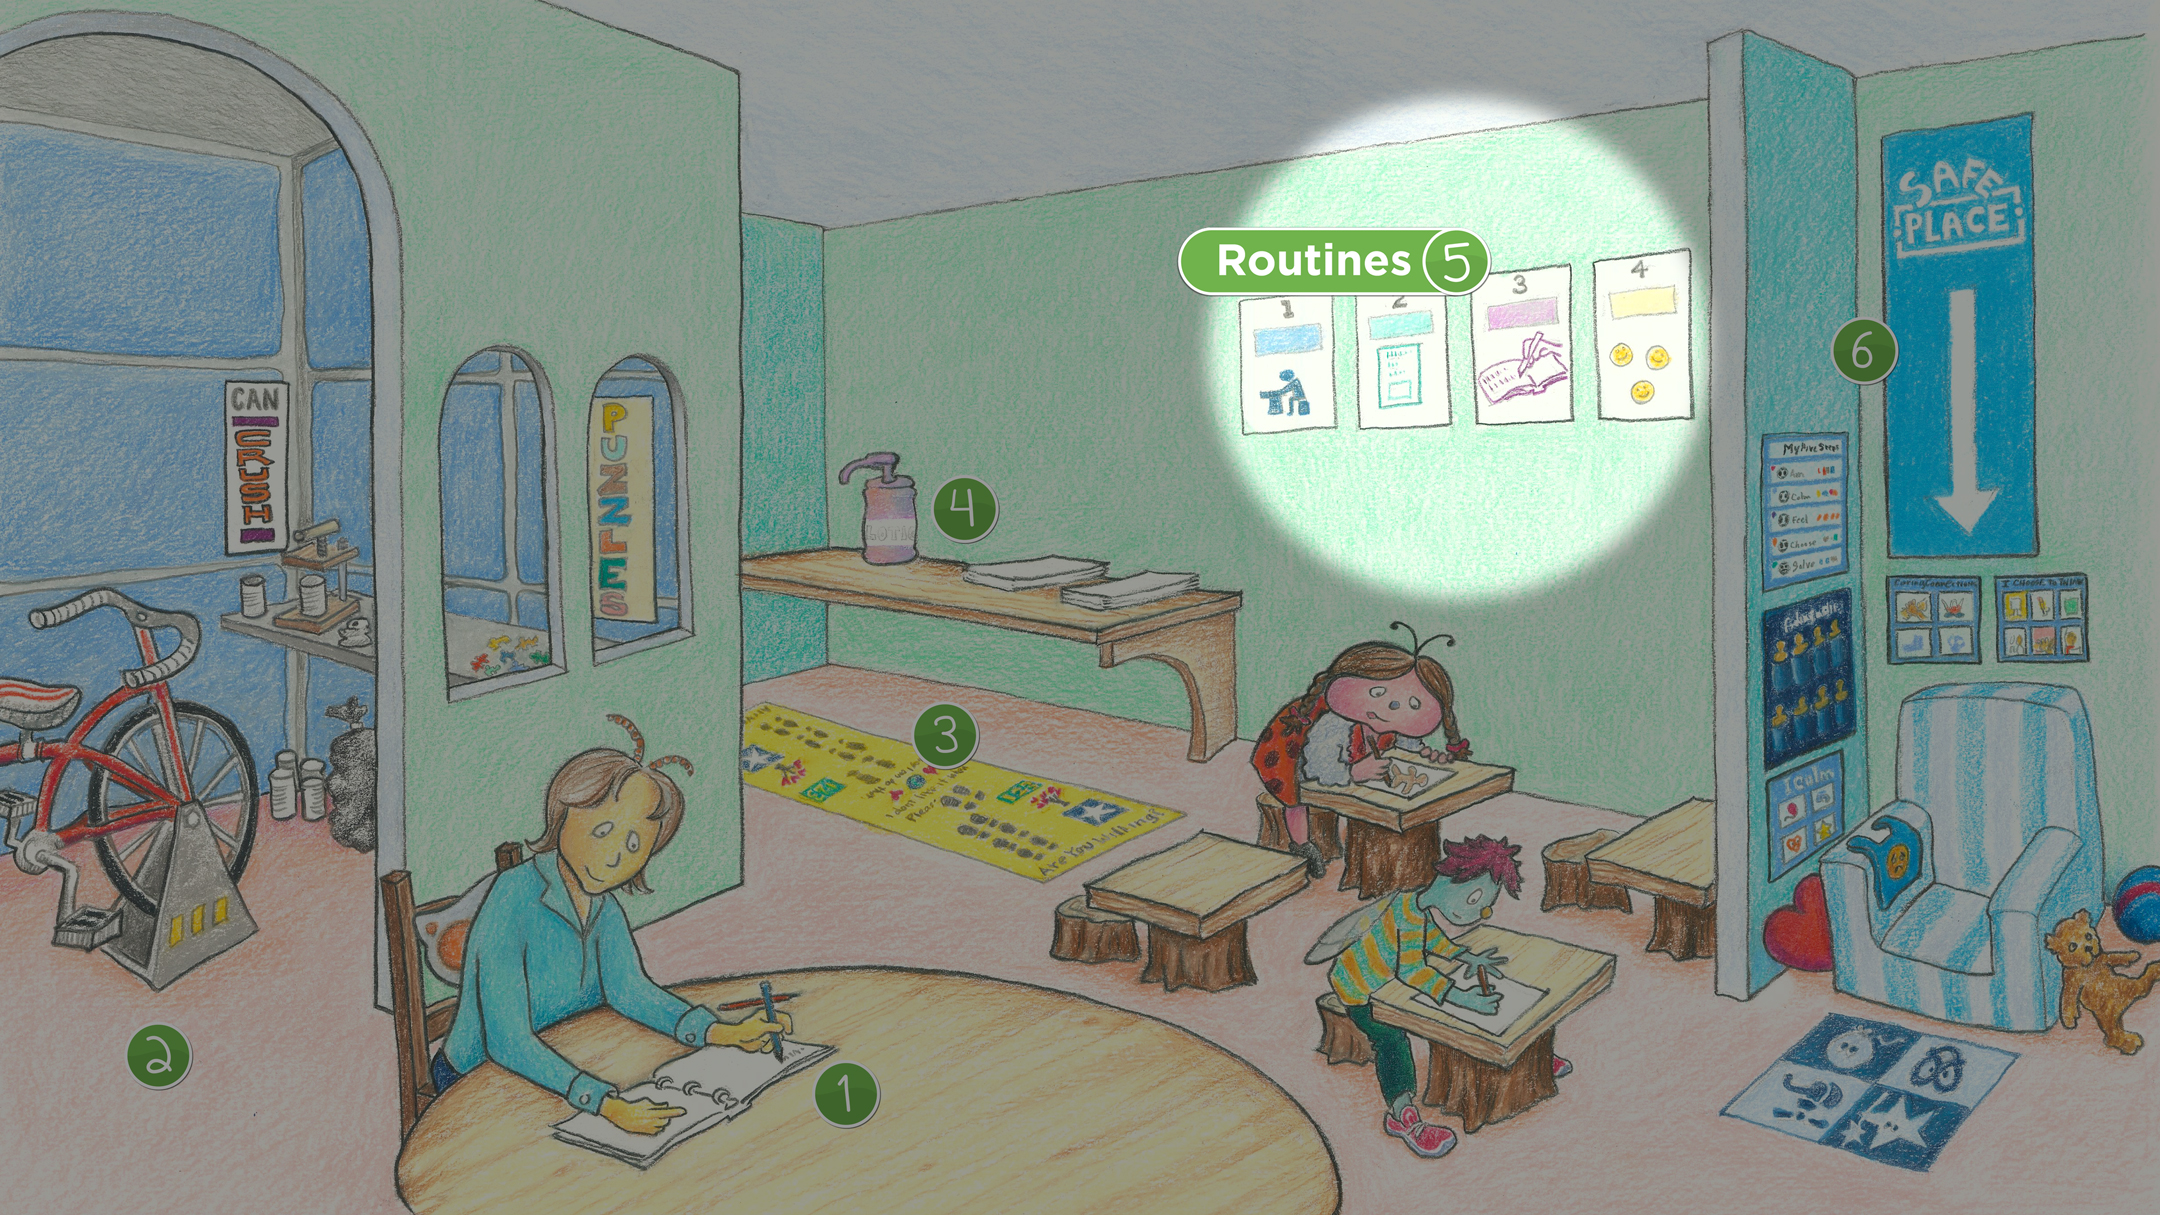 ISS Room: Routines